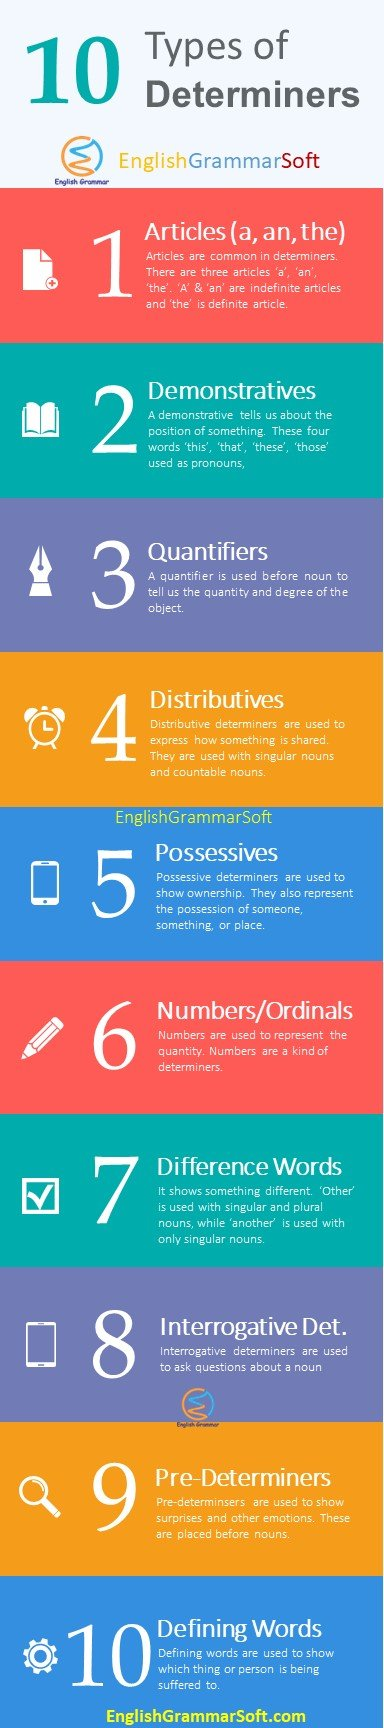 10 Types of Determiners in English with Examples & Definitions